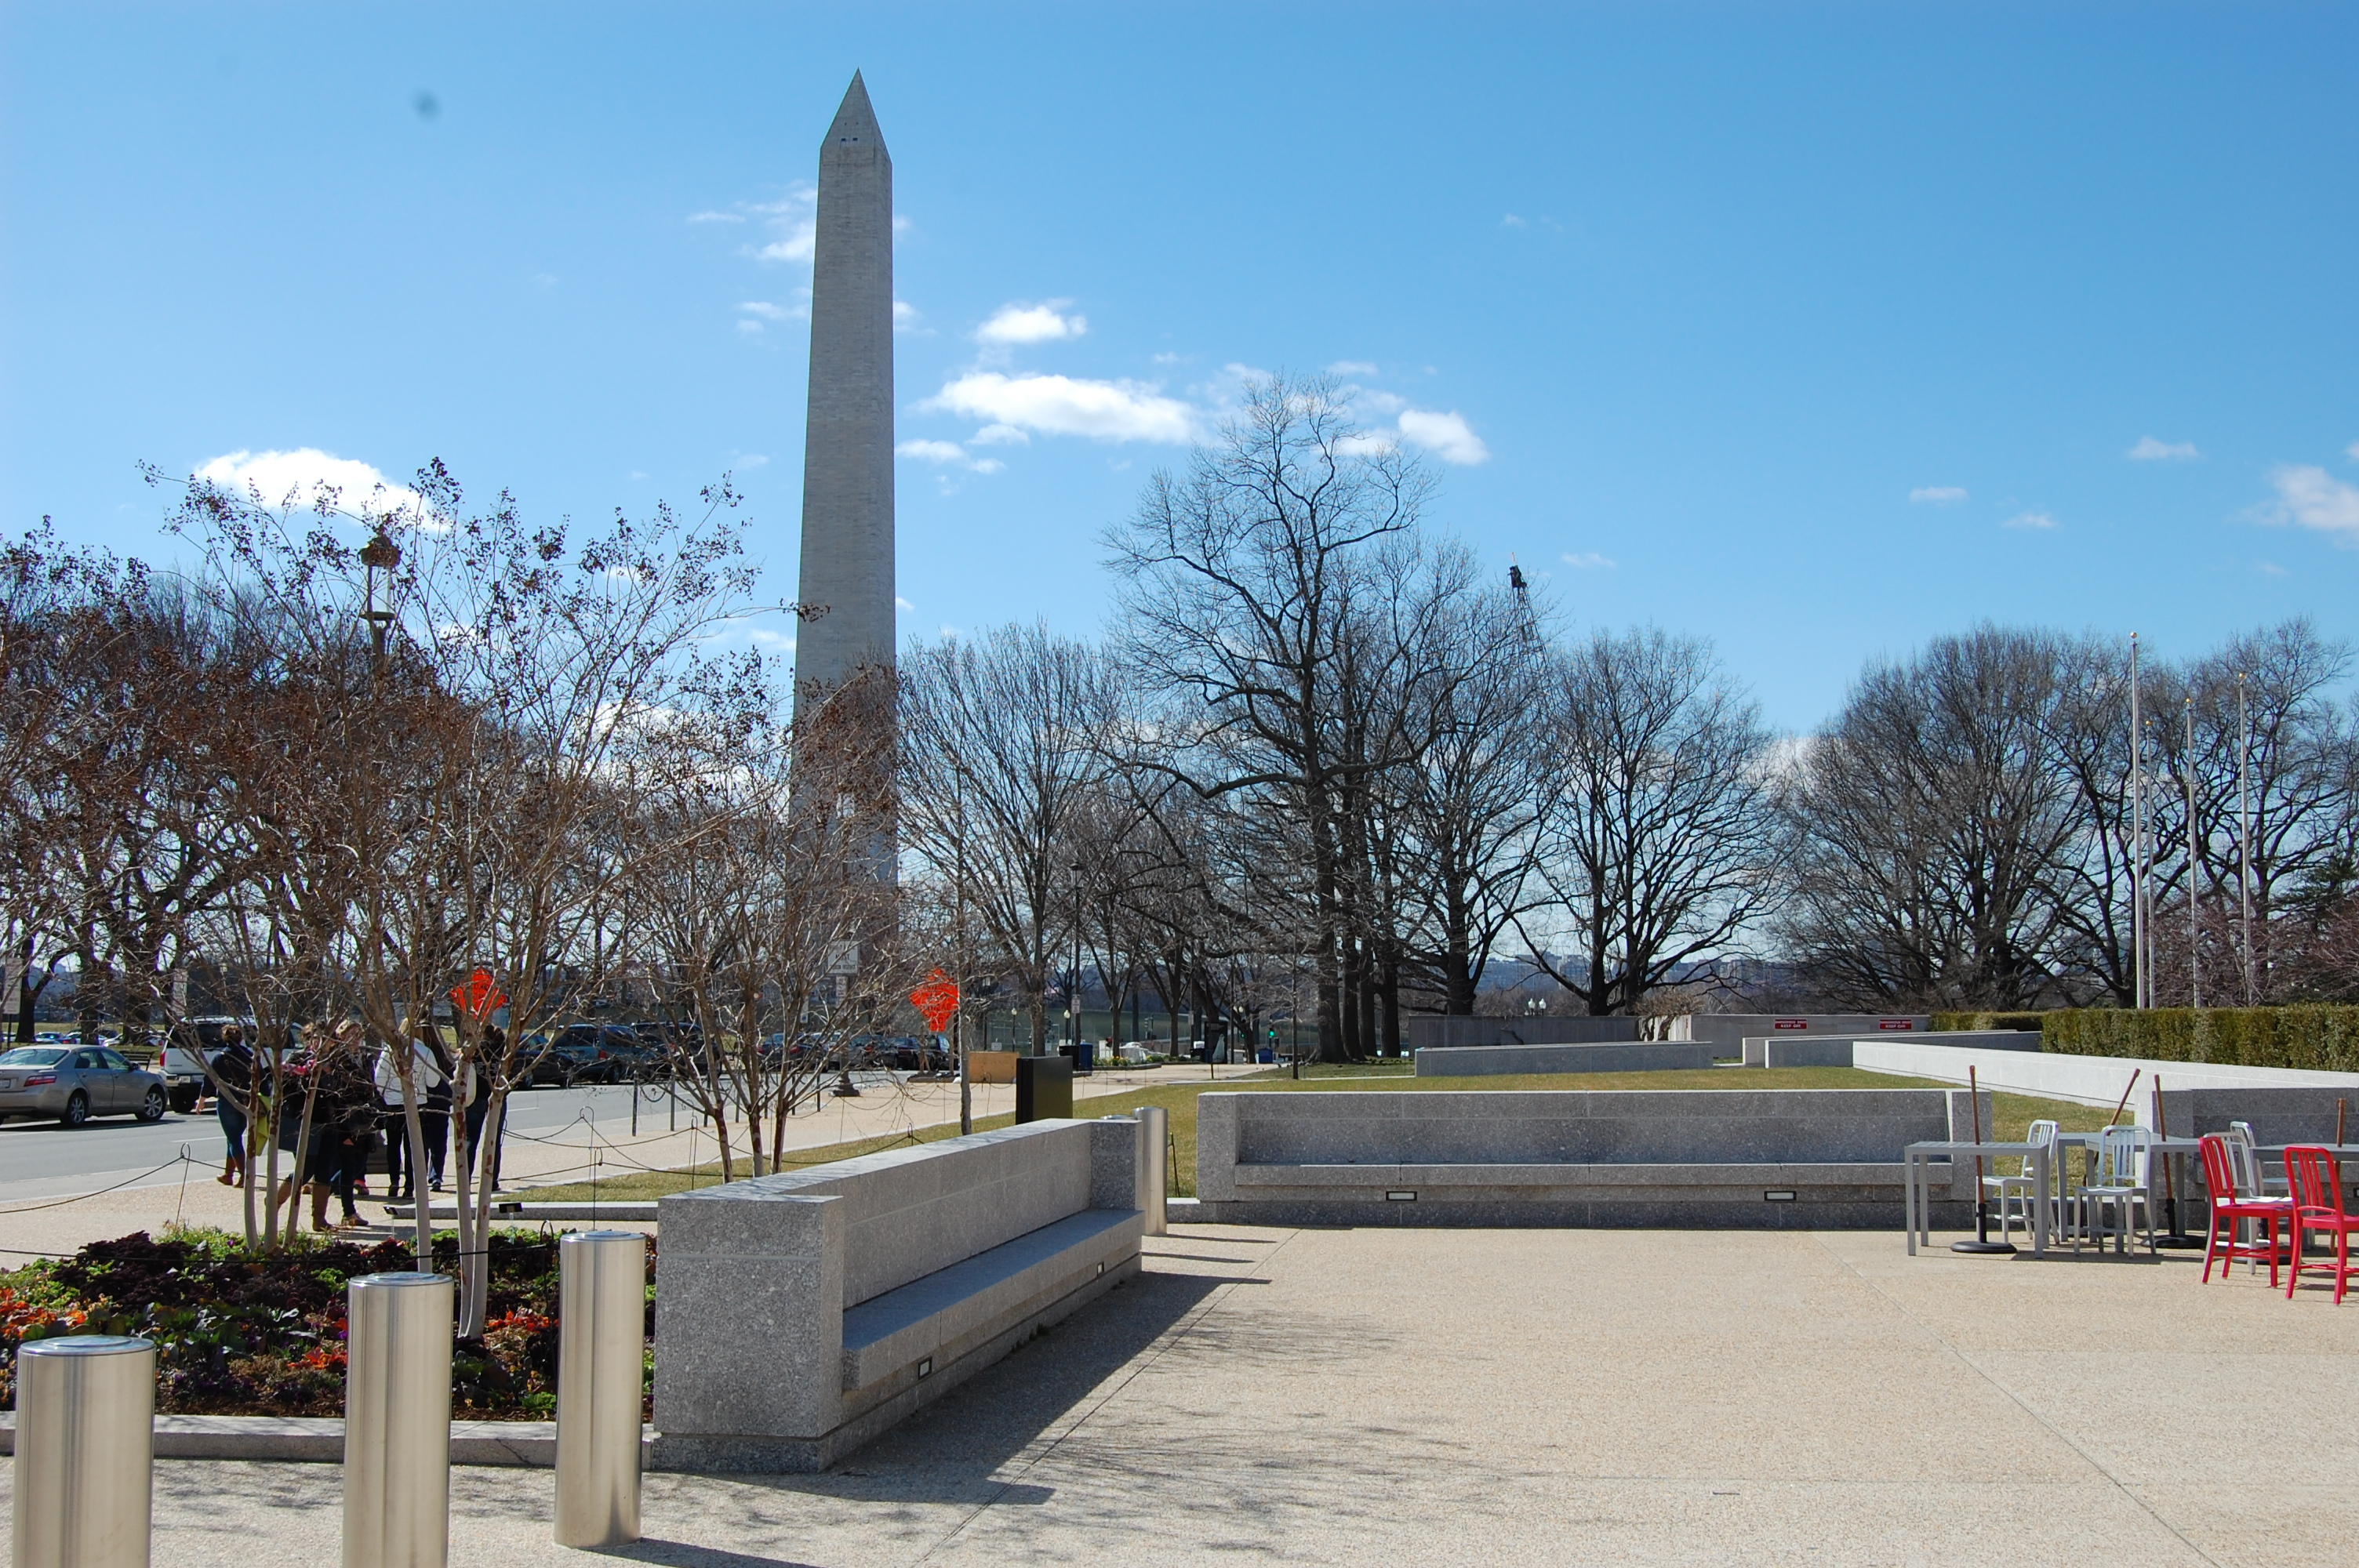 The Museum's Mall entrance, where benches overlook the Washington Monument.